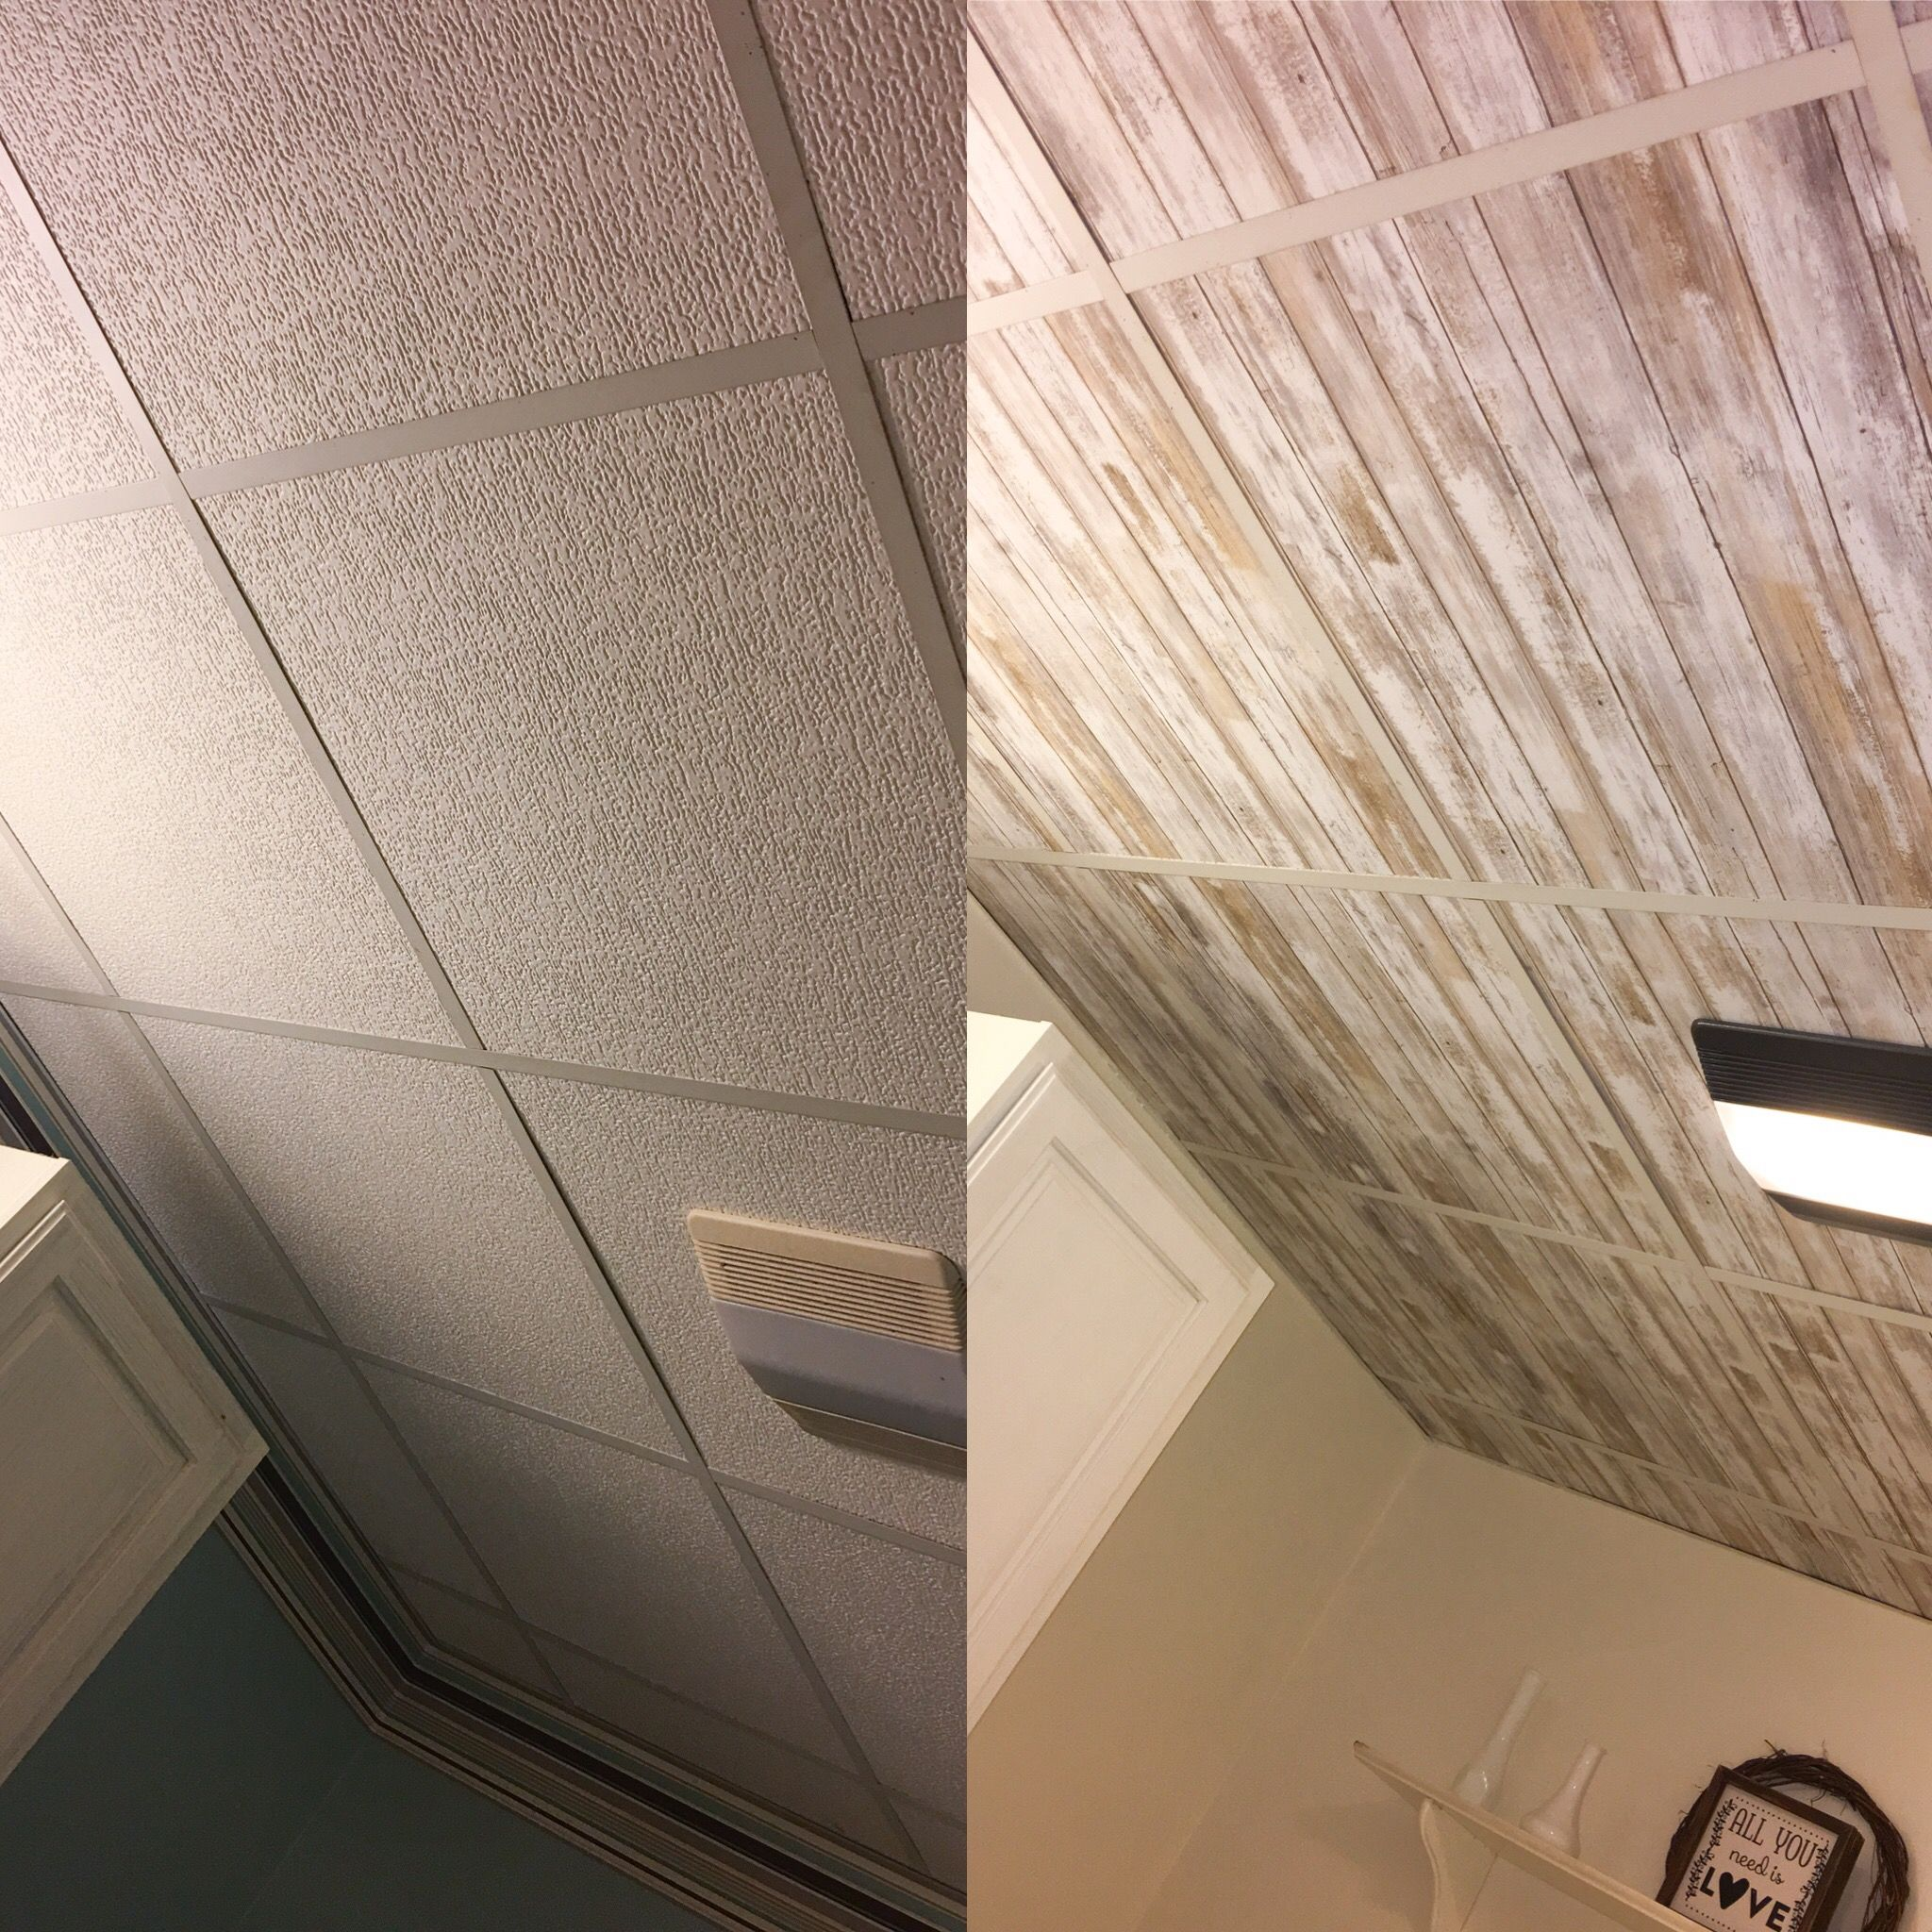 Wallpapered Drop Ceiling. Update Drop Ceilings With Peel